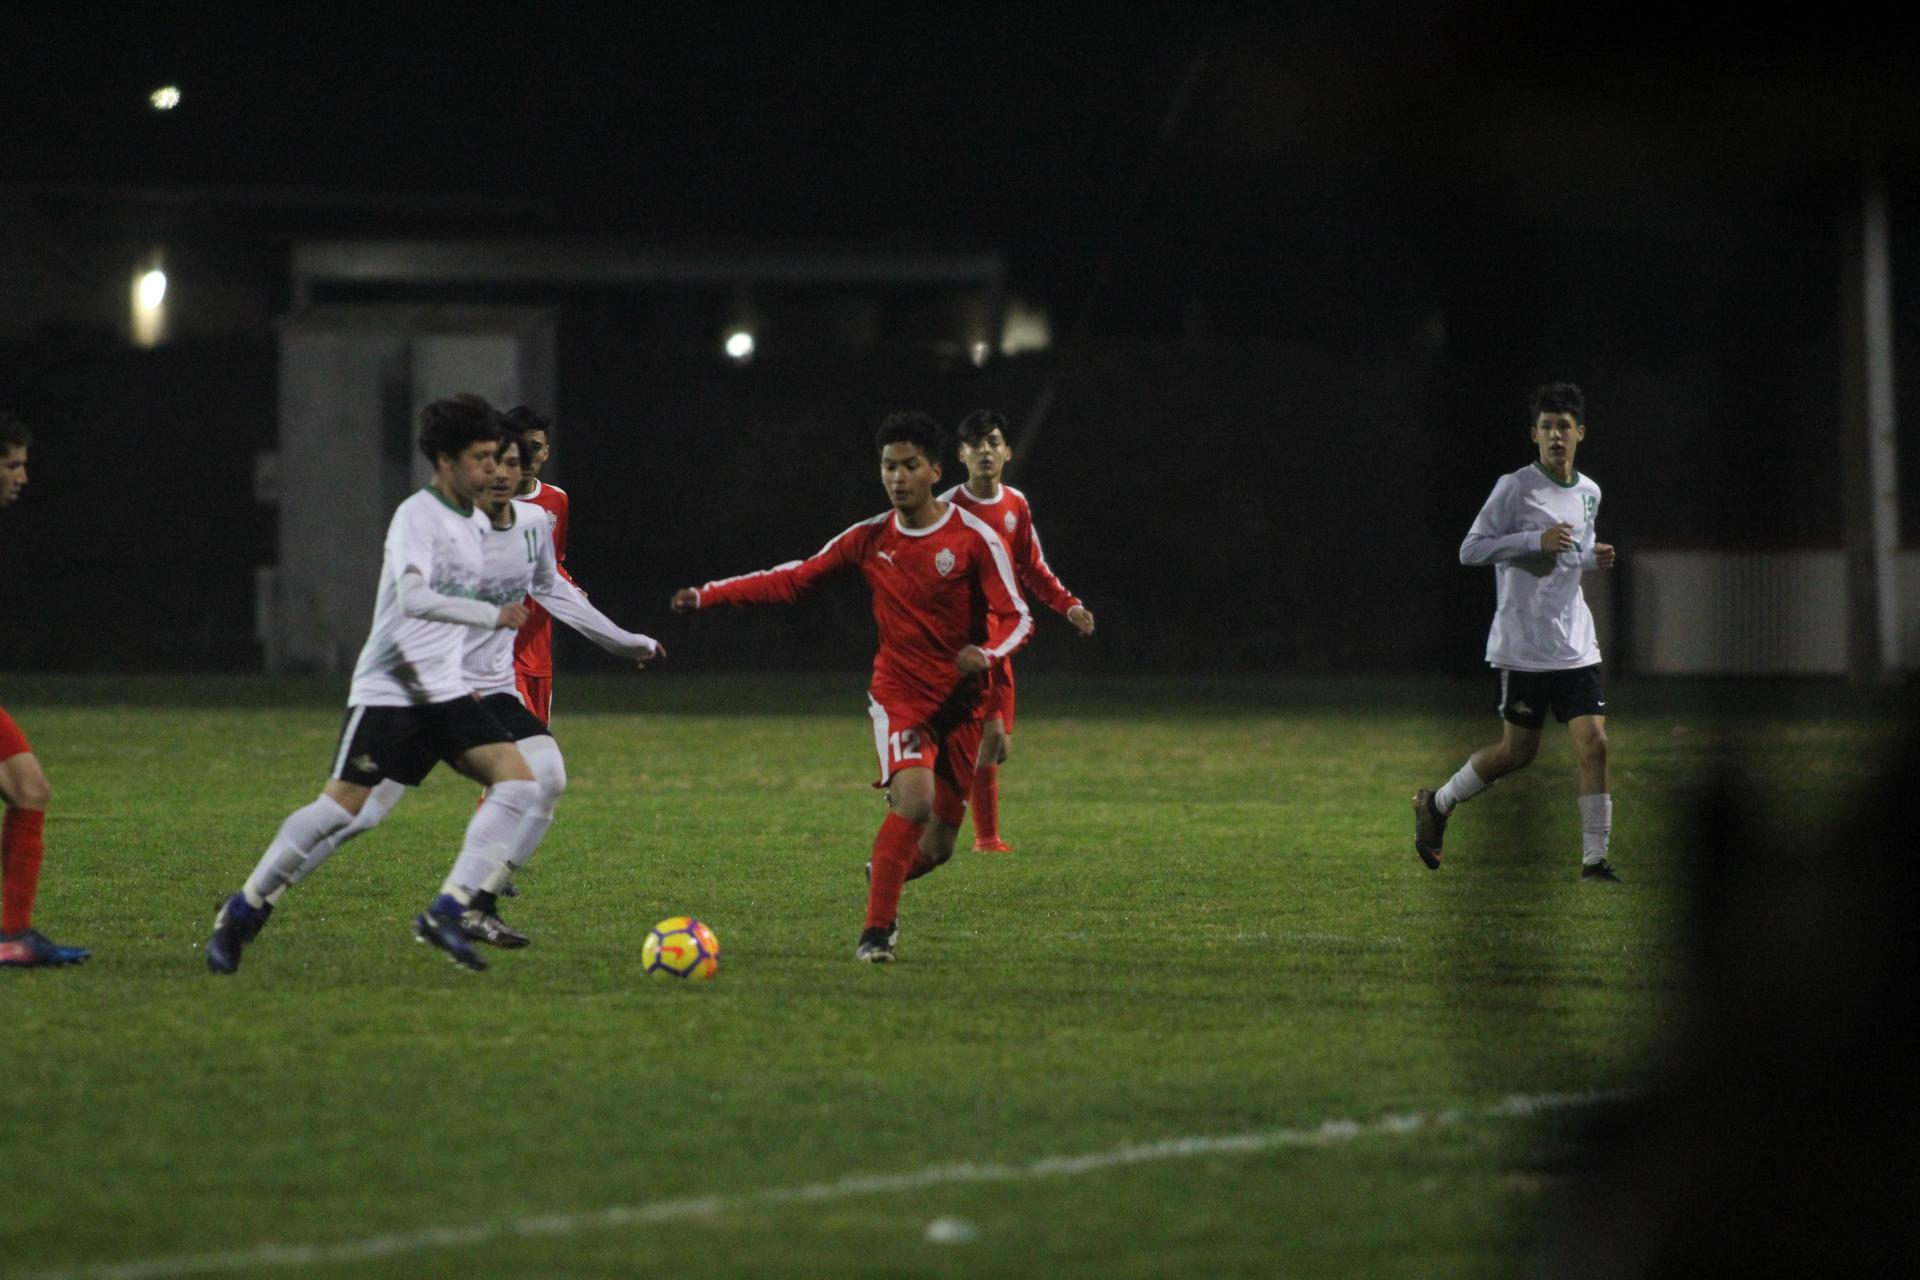 Boy's playing soccer Vs Roosevelt